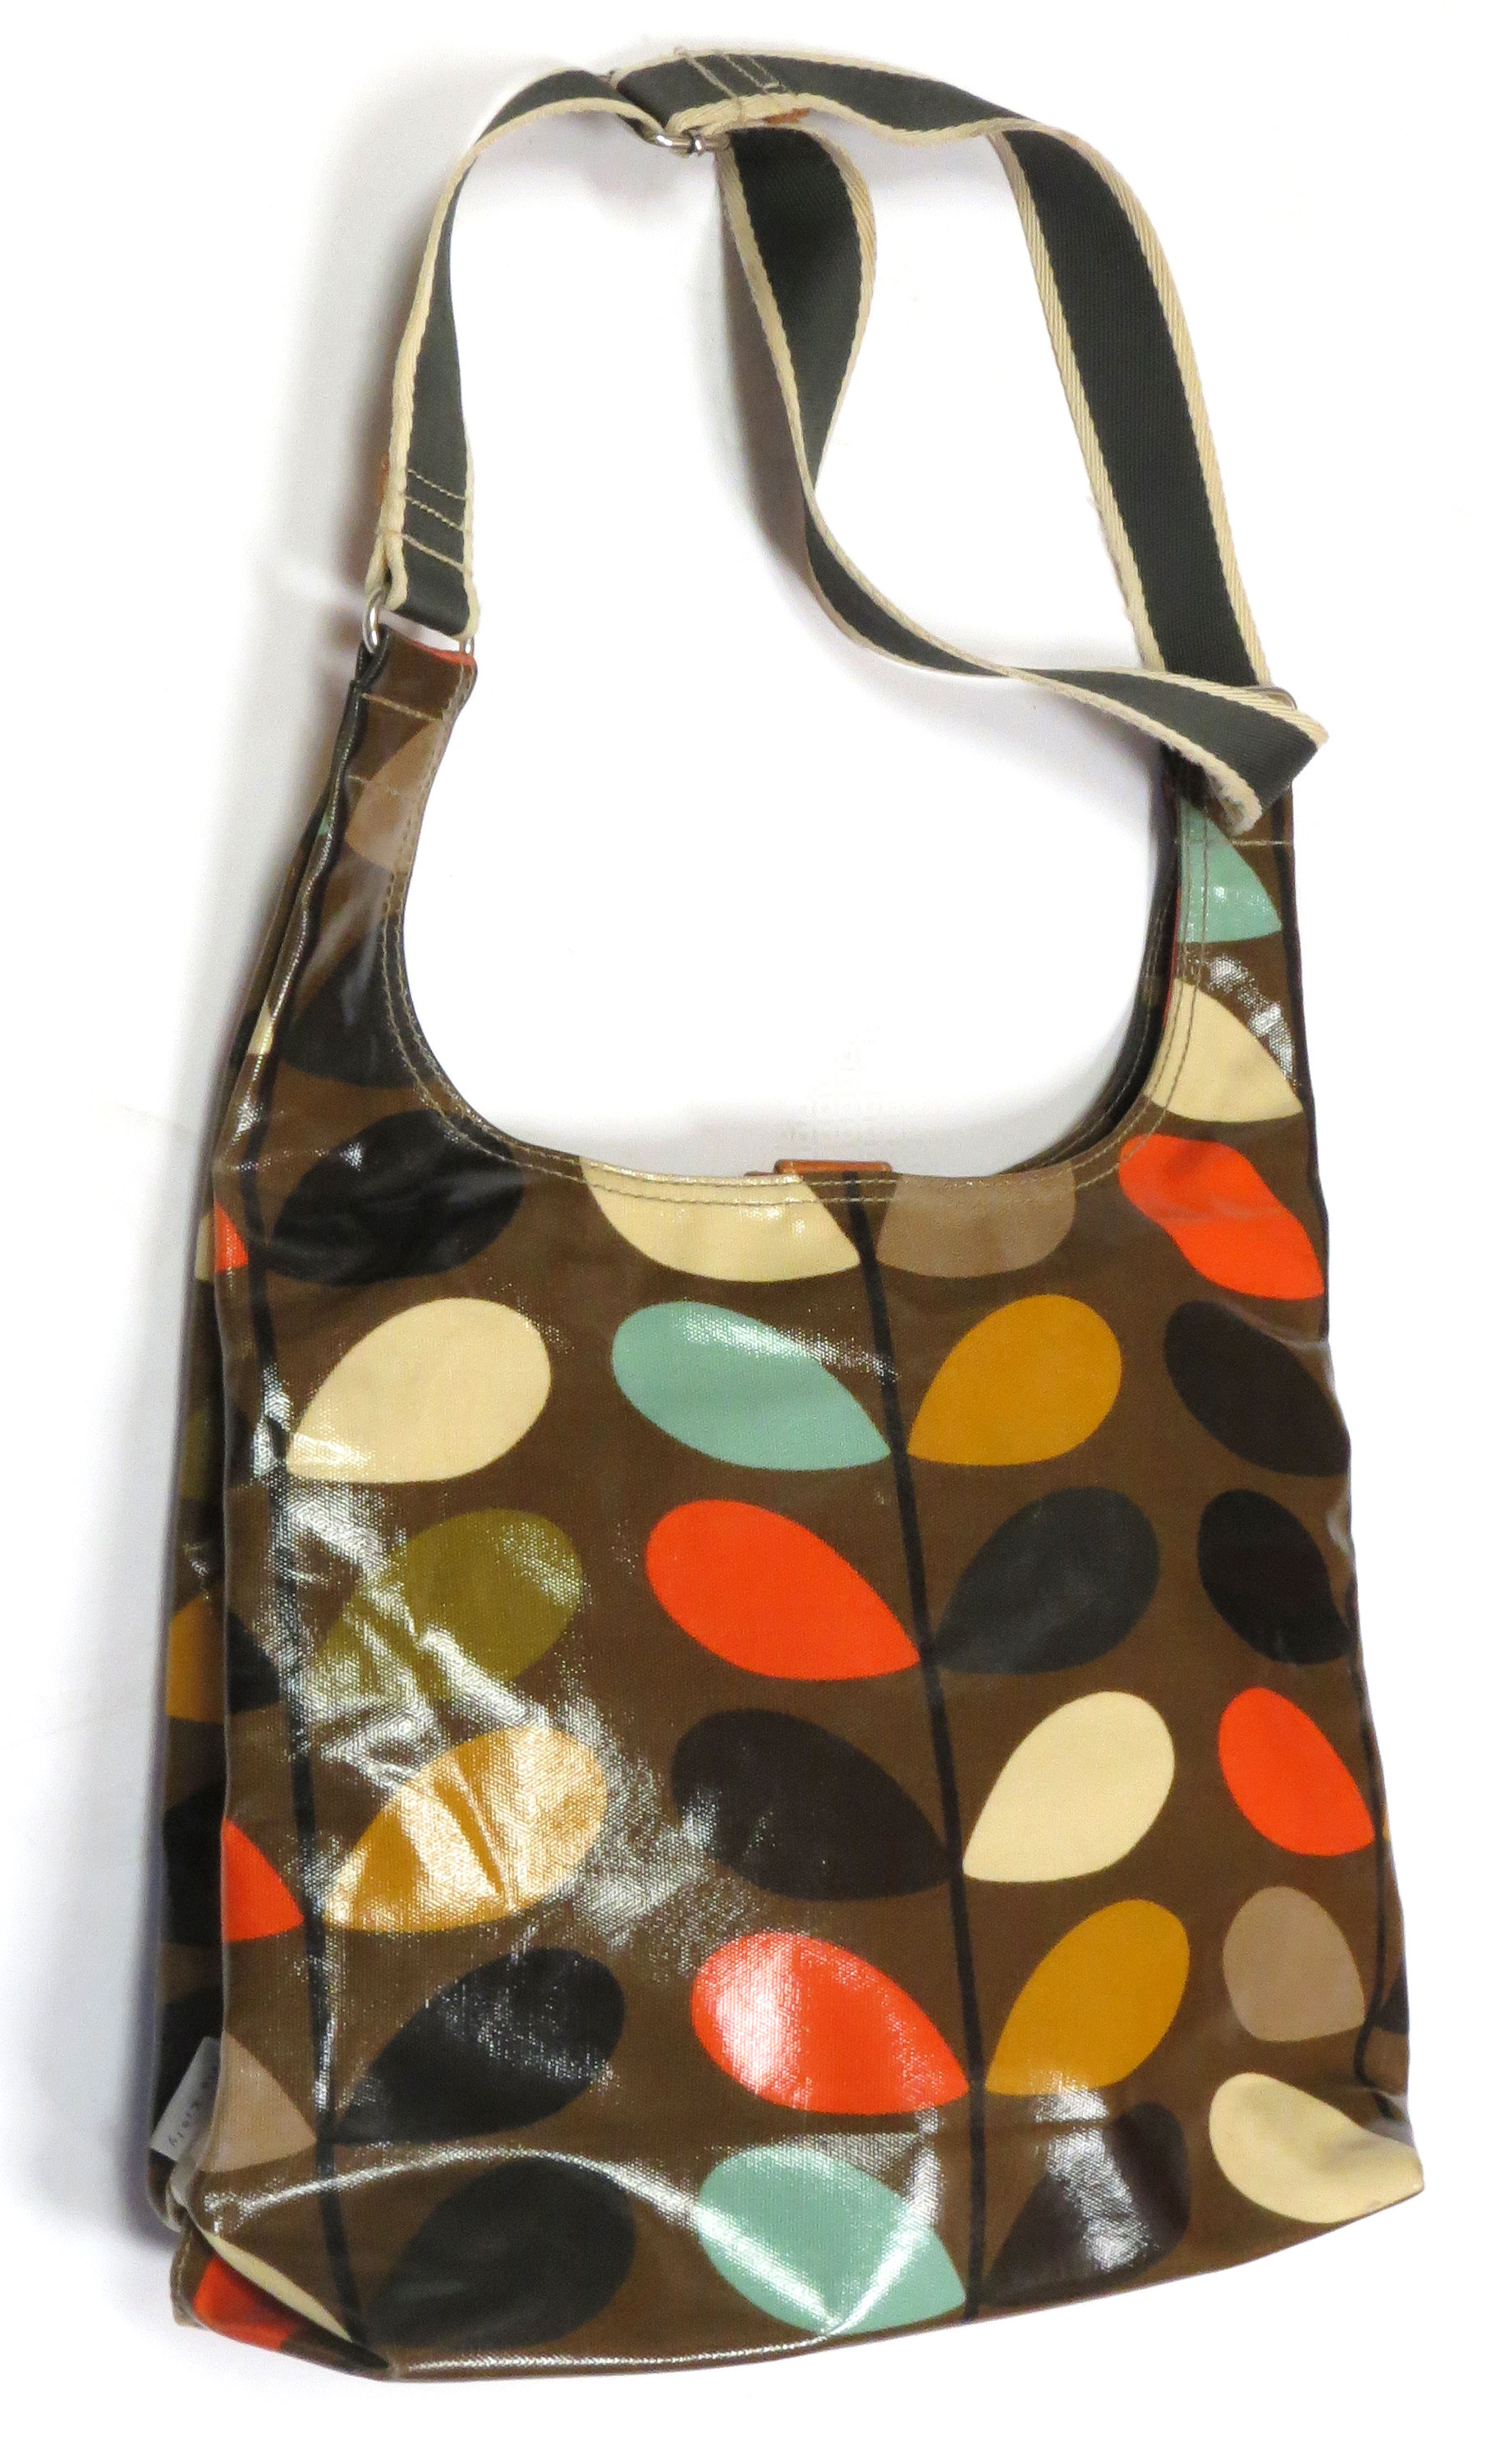 Orla Kiely Crossbody Bag